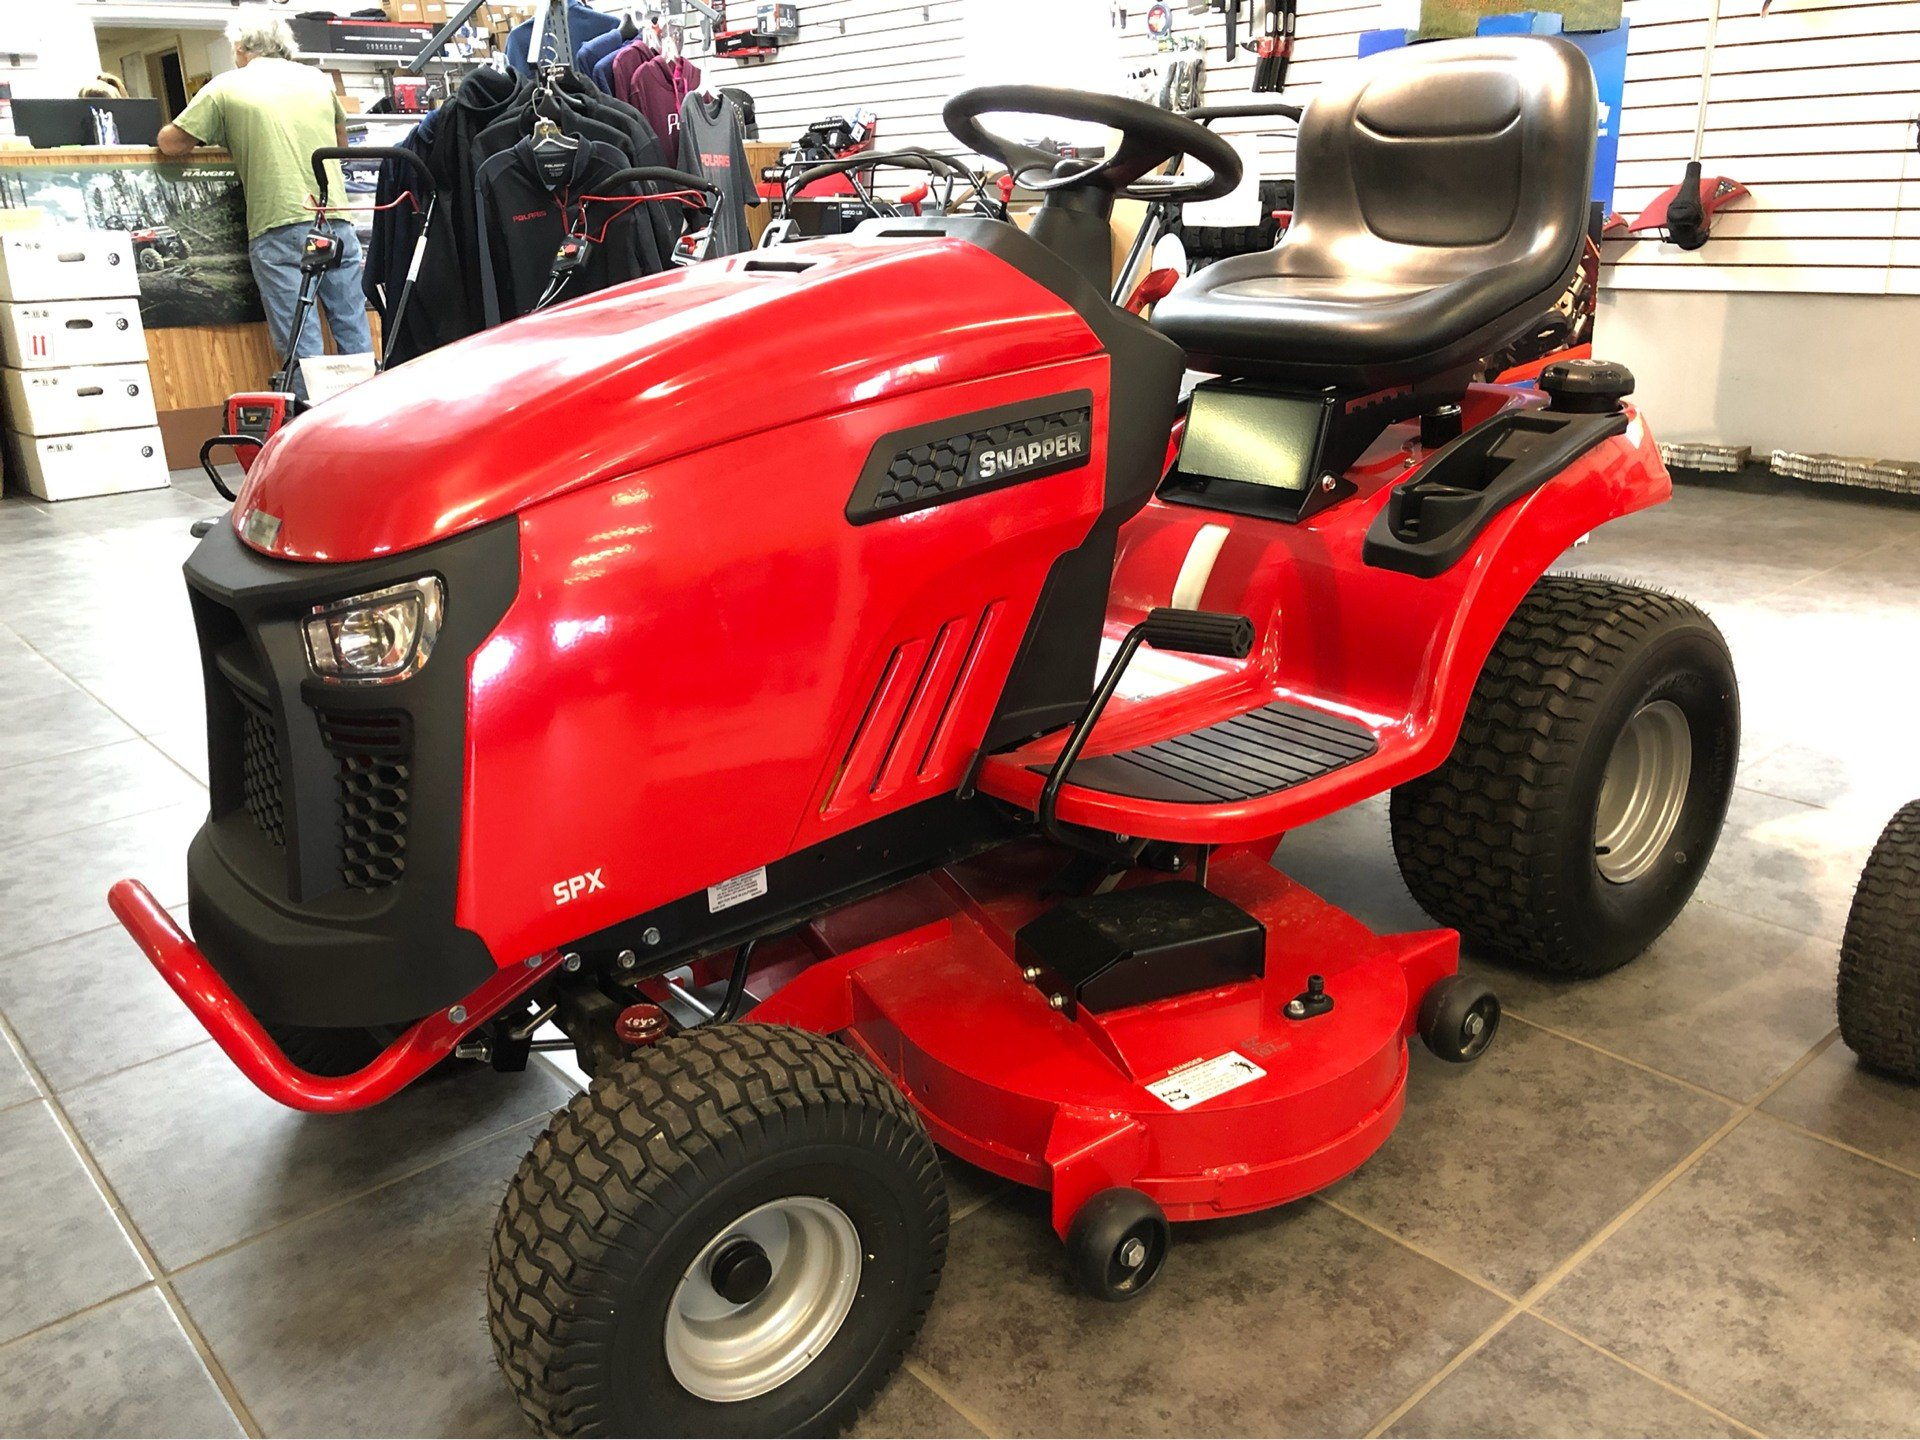 2018 Snapper SPX 25/42 42 in. Briggs & Stratton 25 hp in Fond Du Lac, Wisconsin - Photo 2